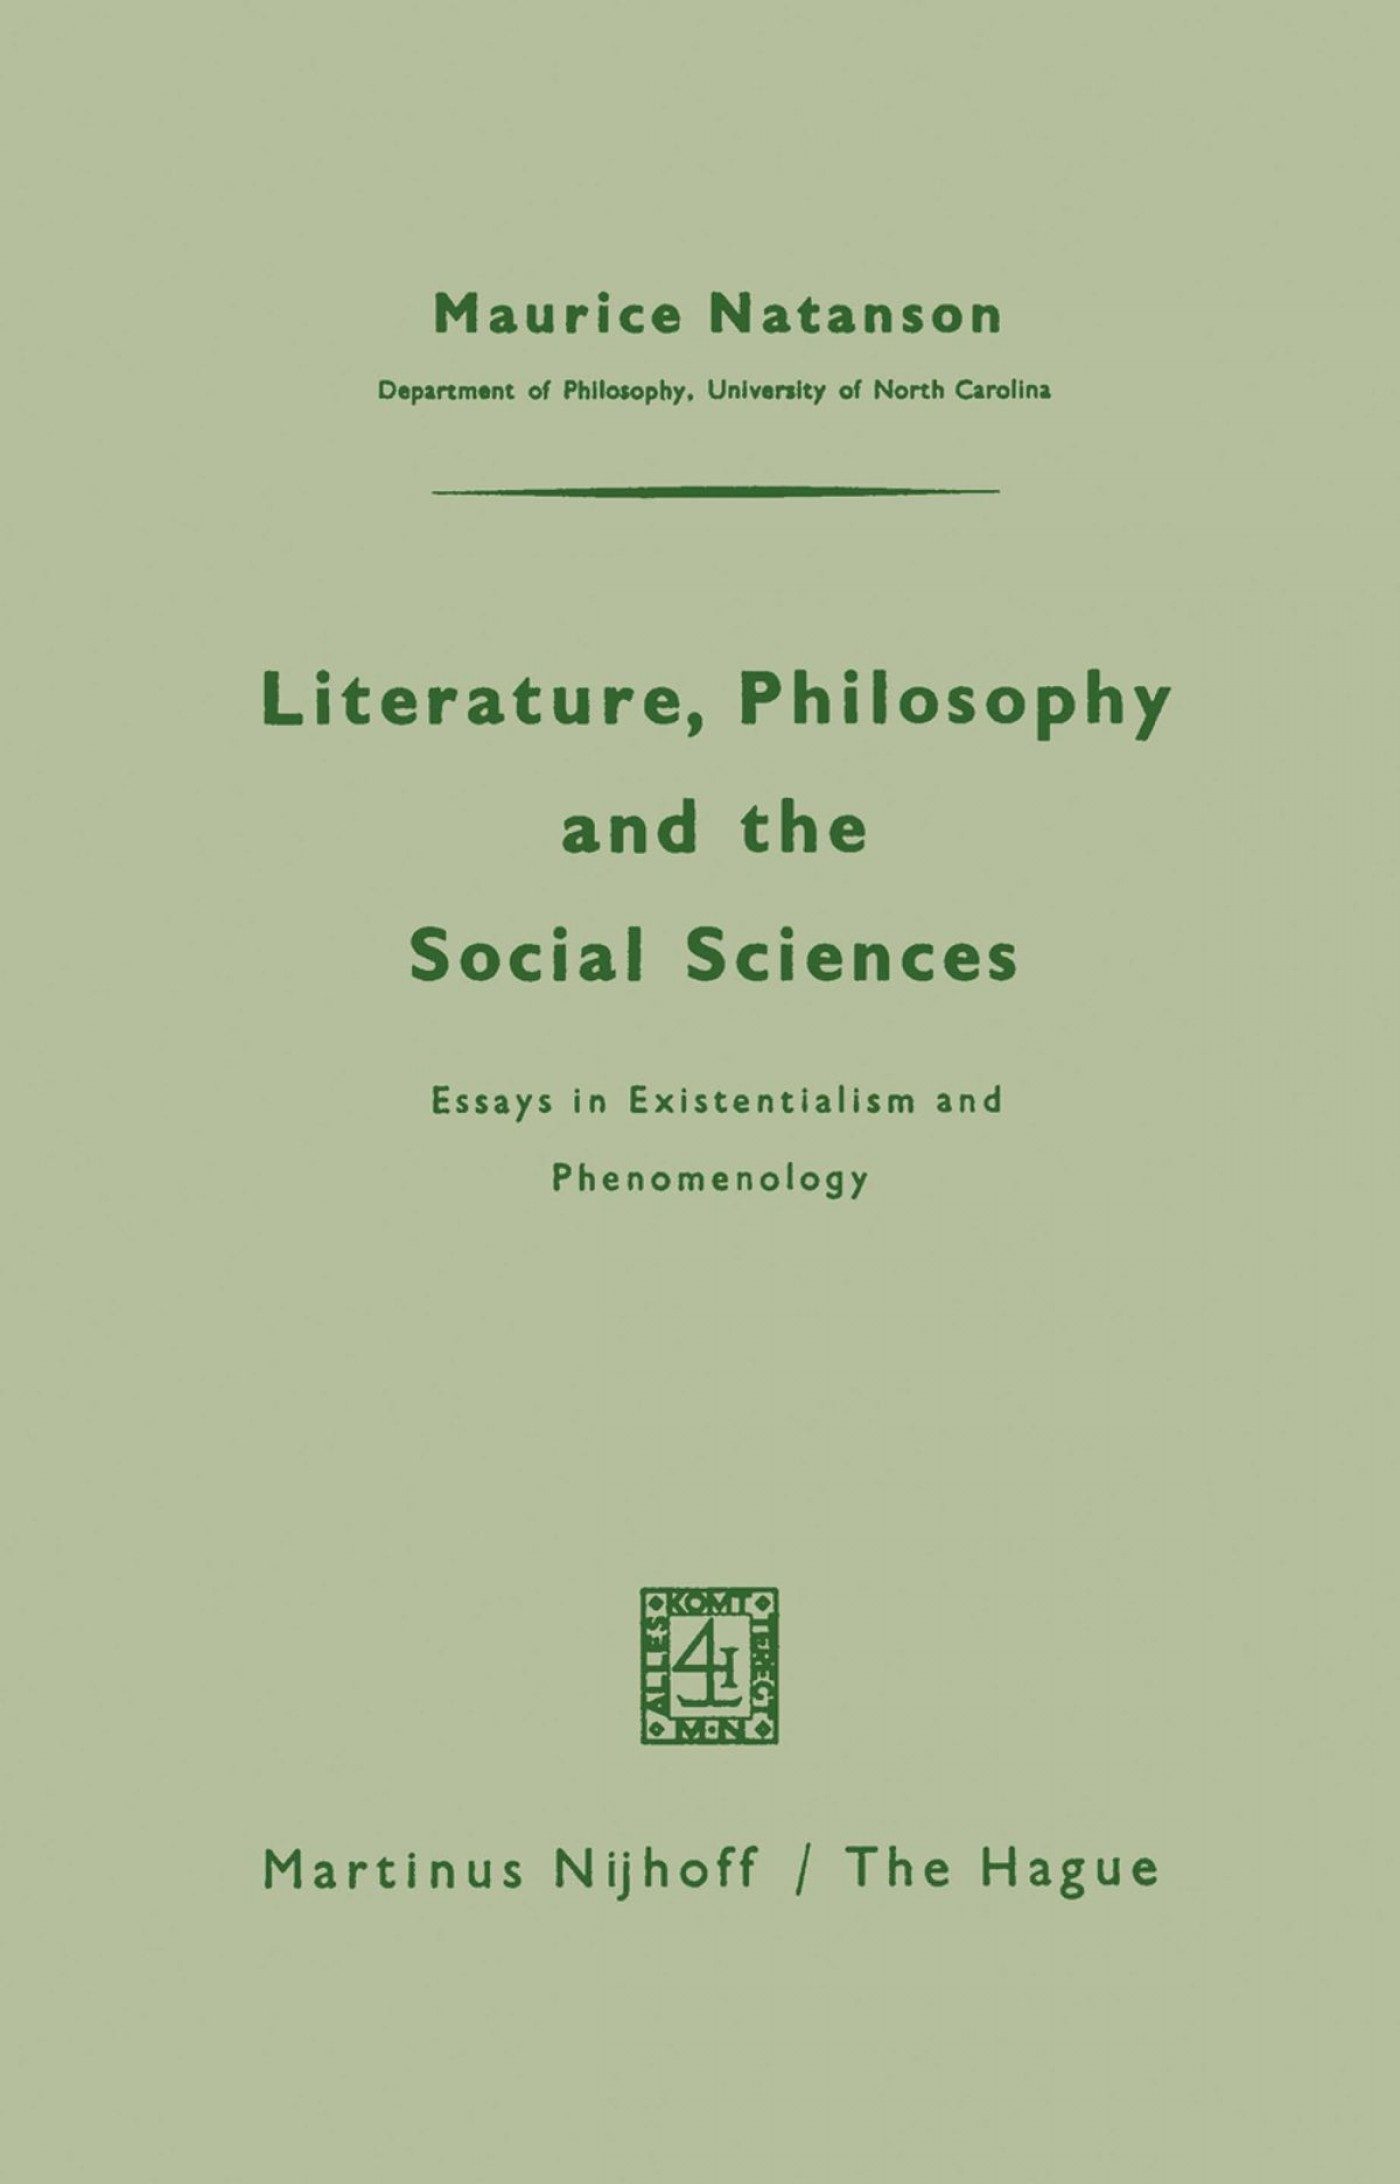 009 Literature Philosophy And The Social Sciences Essay Example Essays In Outstanding Existentialism Sartre Tumblr Clarke Lexa 1400